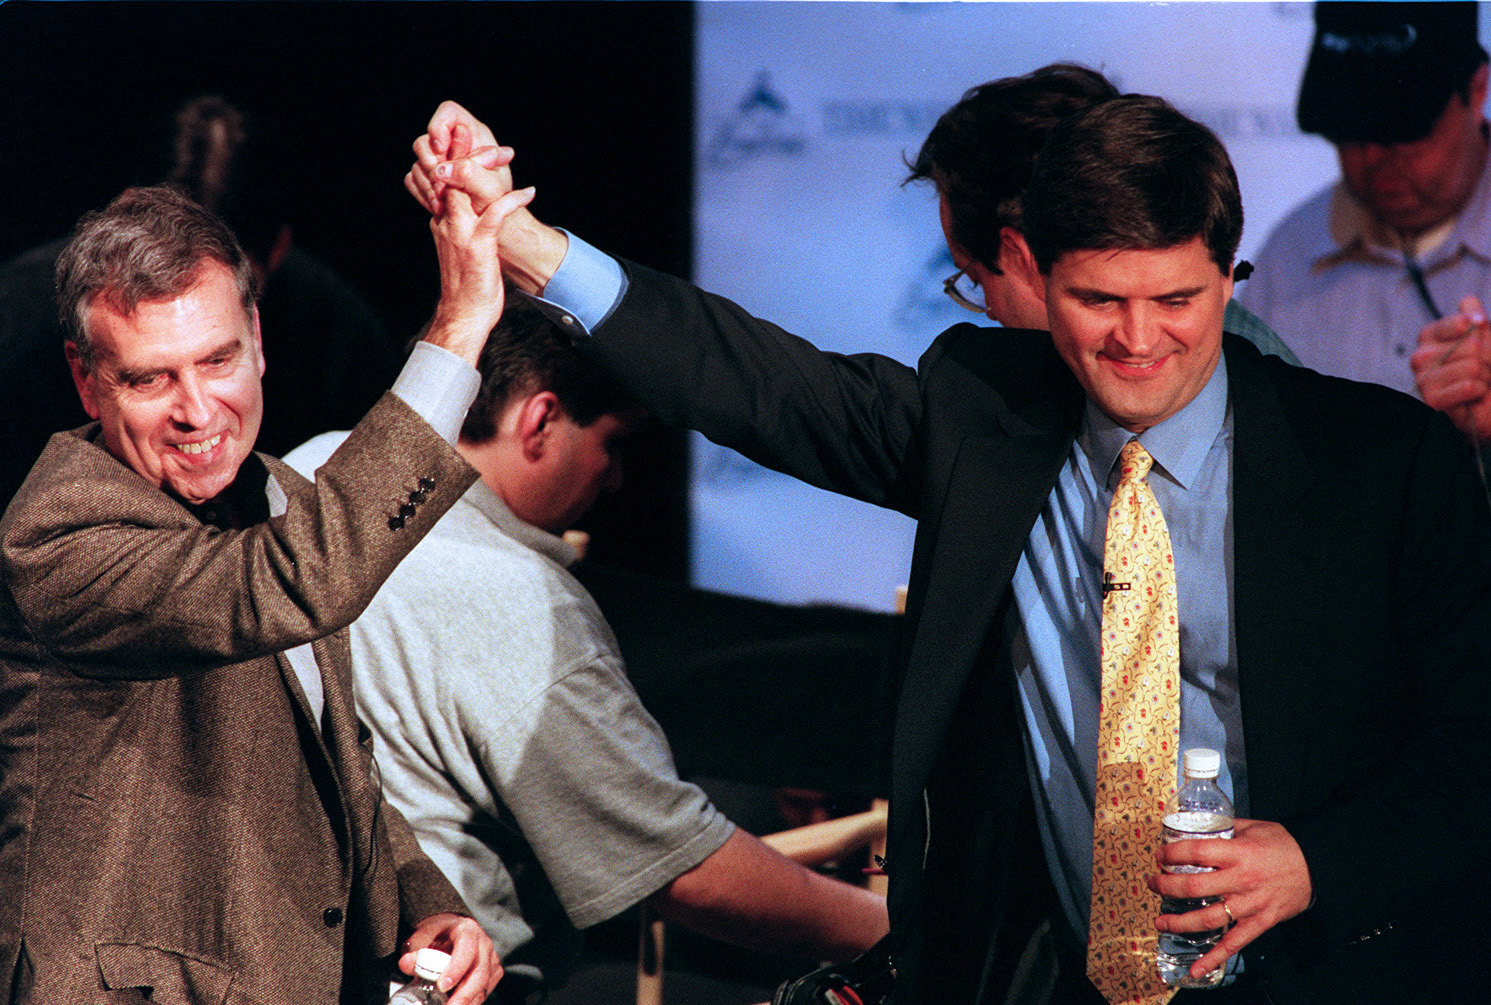 Gerald Levin of Time Warner, left, with Stephen Case of America Online, announcing A.O.L.'s $165 billion deal to acquire Time Warner in January 2000.